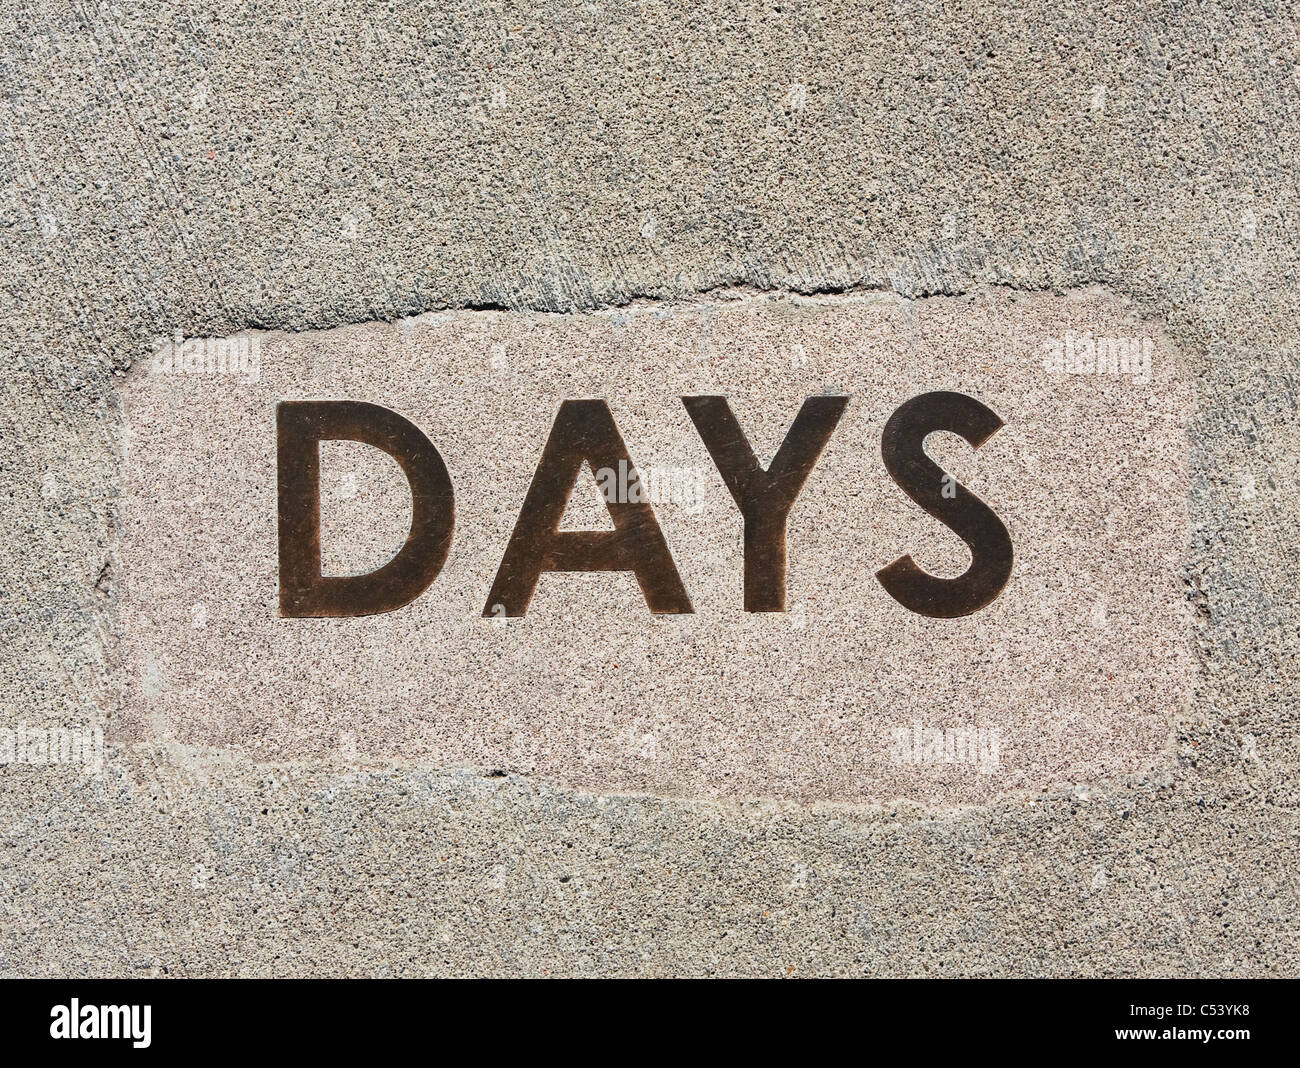 word days cast in concrete - Stock Image